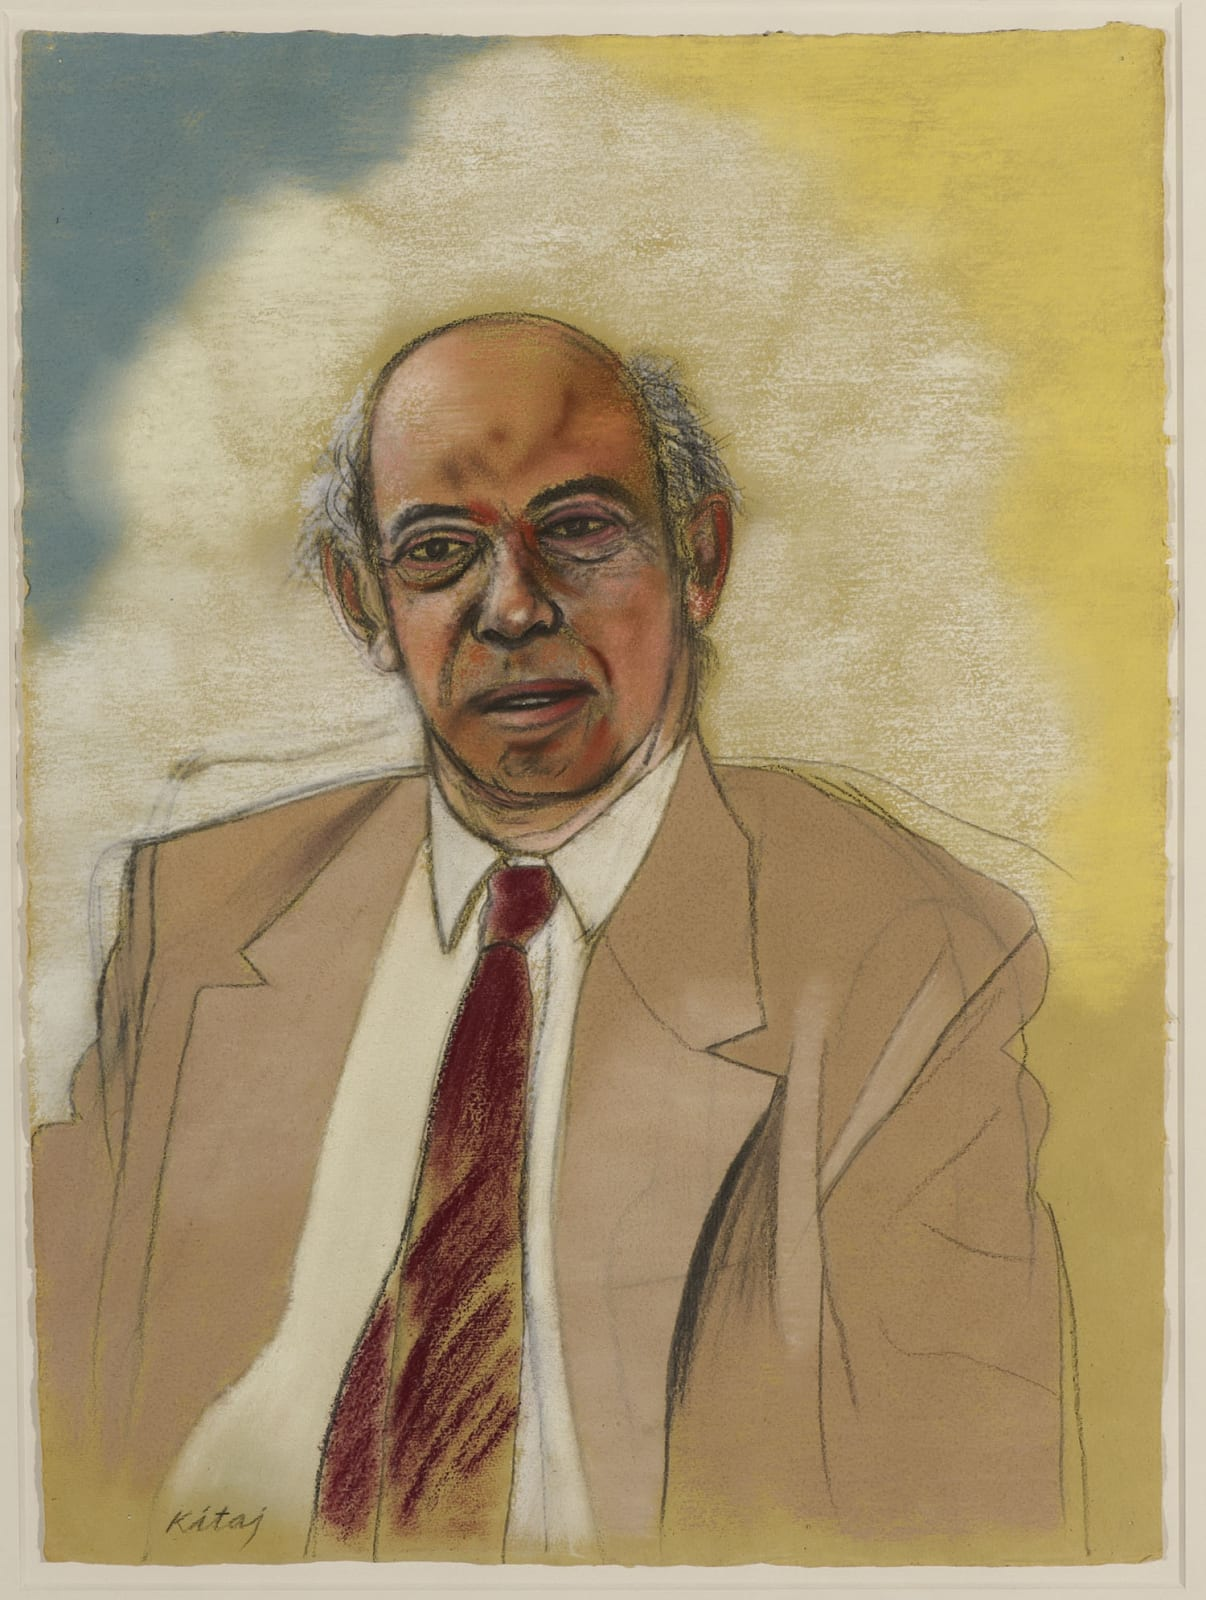 R.B. Kitaj (1932-2007) Sir Claus Moser 1987 Pastel on paper 77 x 57 cm Ben Uri Collection © R.B. Kitaj estate To see and discover more about this artist click here